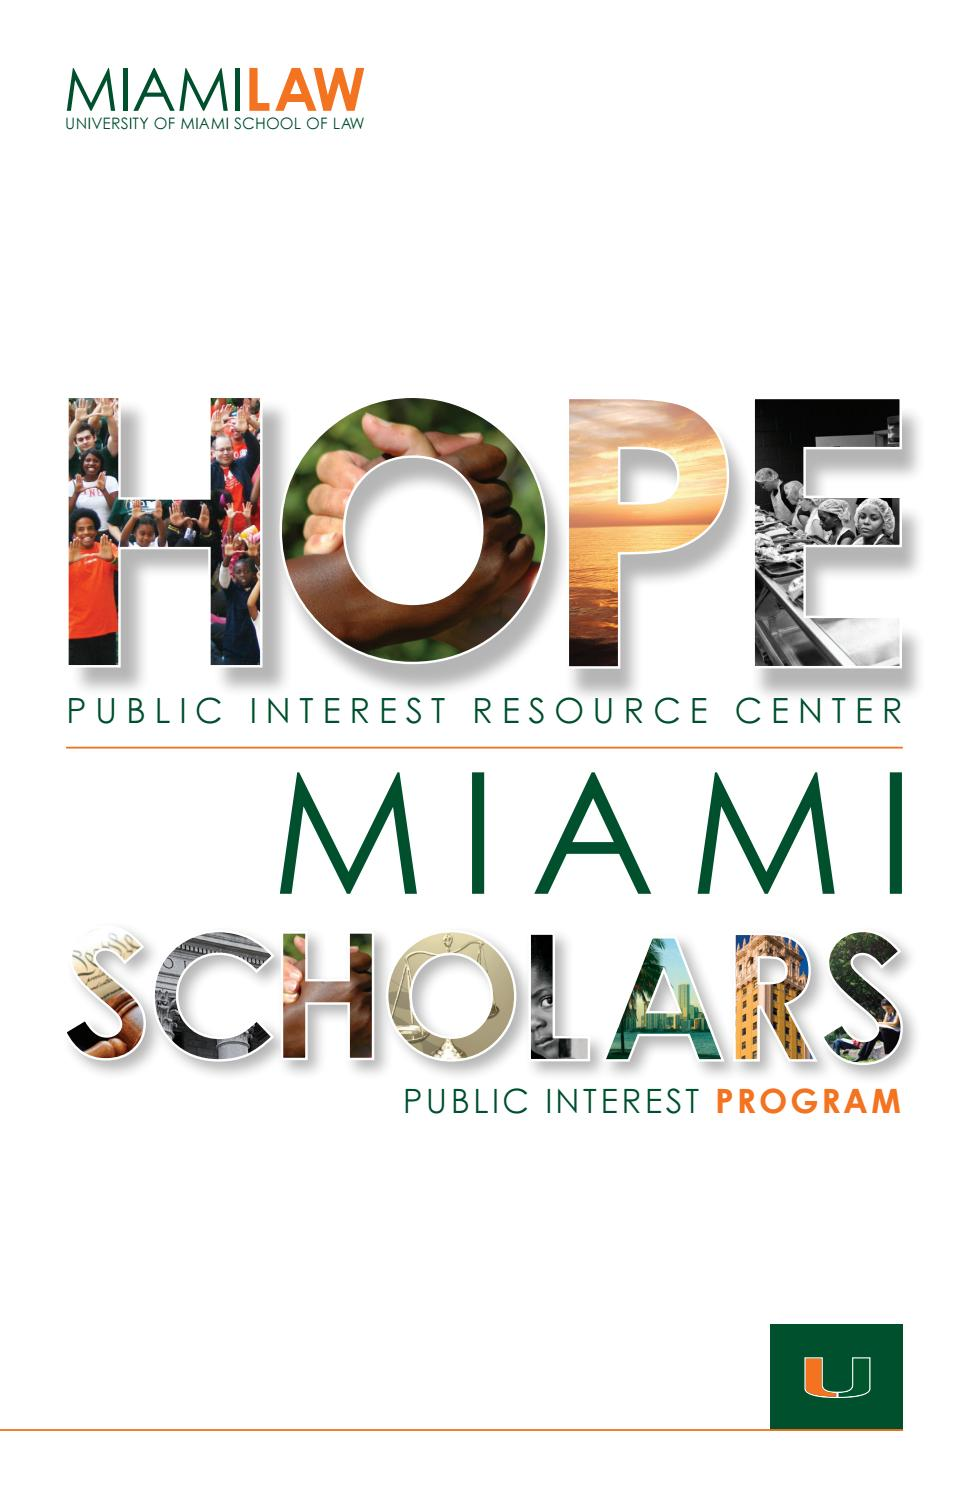 Hope Miami Scholars Class Of 2020 2021 2022 By University Of Miami School Of Law Issuu